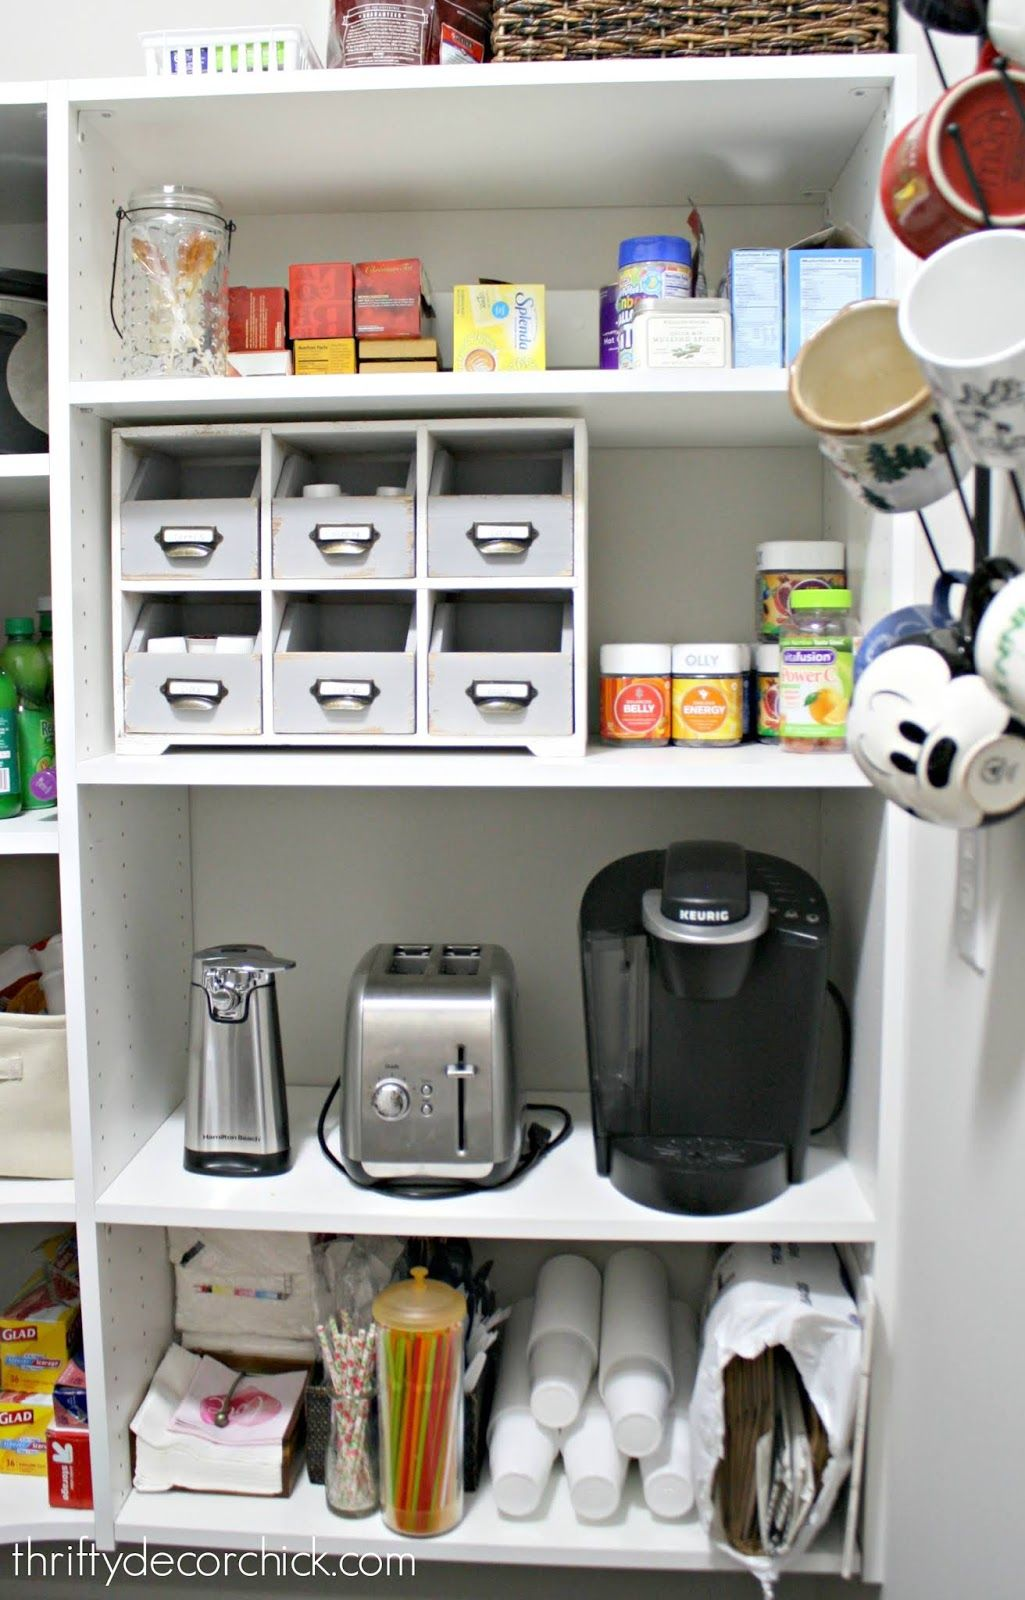 Doityourself pull out shelf for appliances in pantry